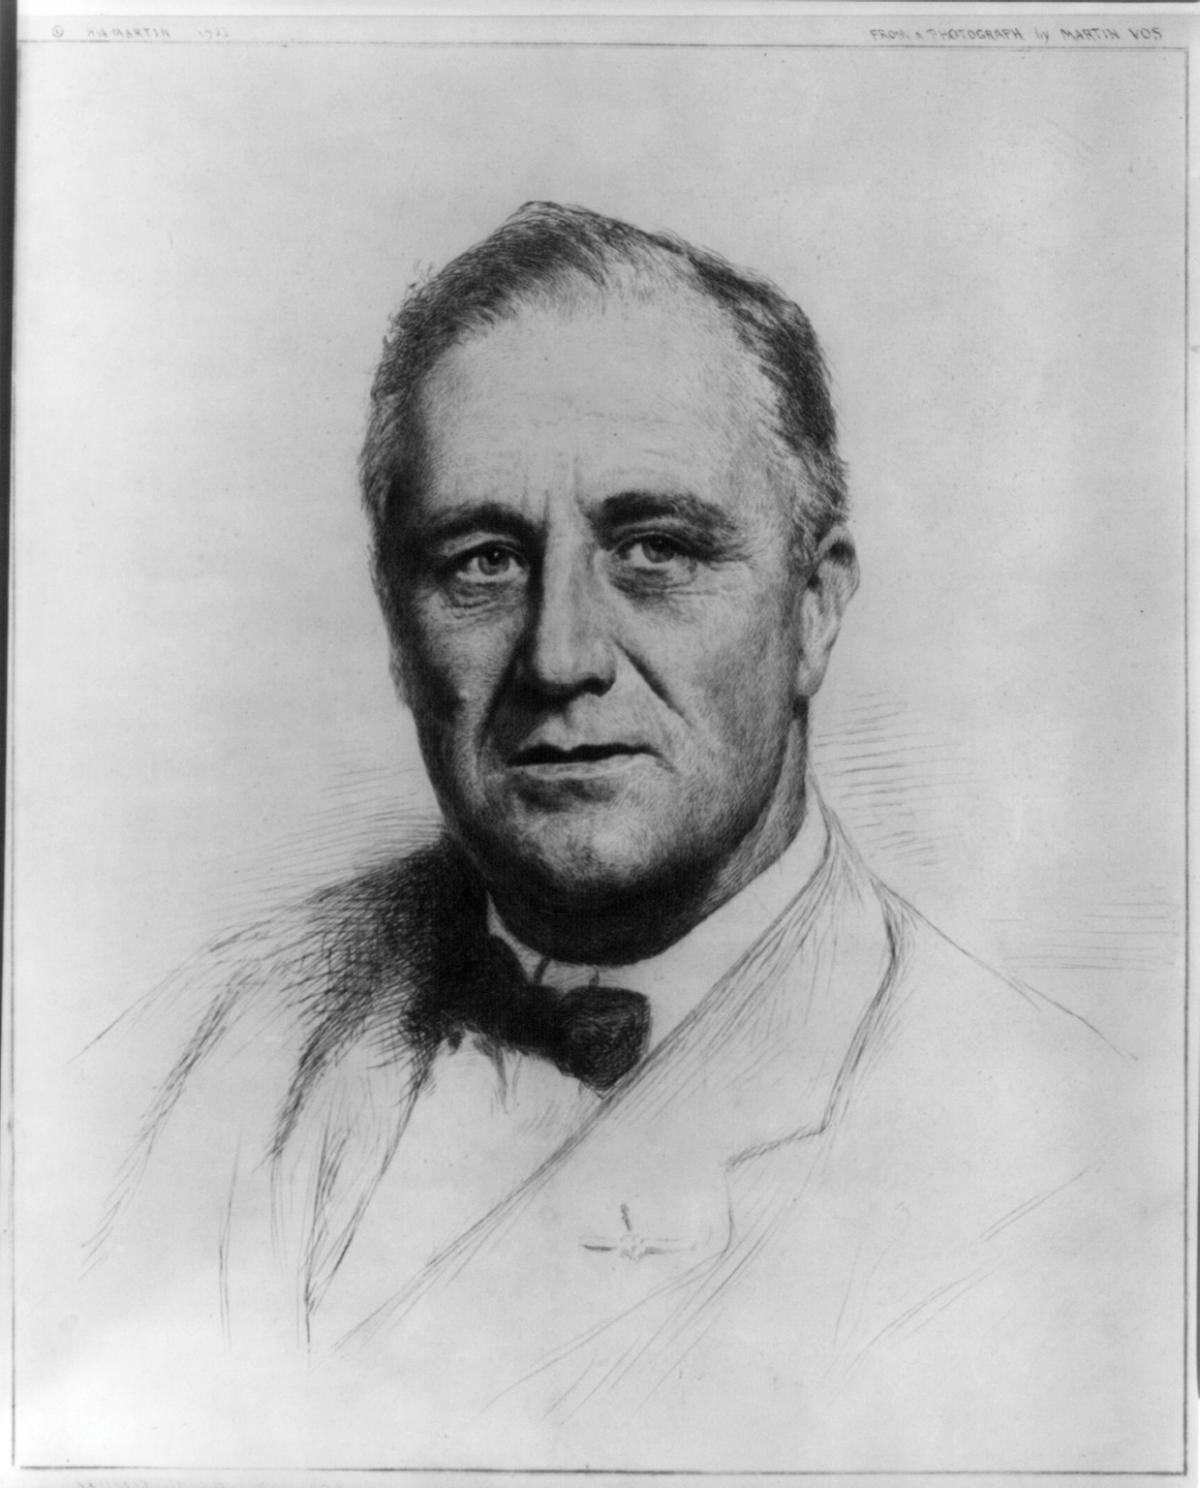 Pencil sketch of FDR, wearing a light colored suit and bow tie